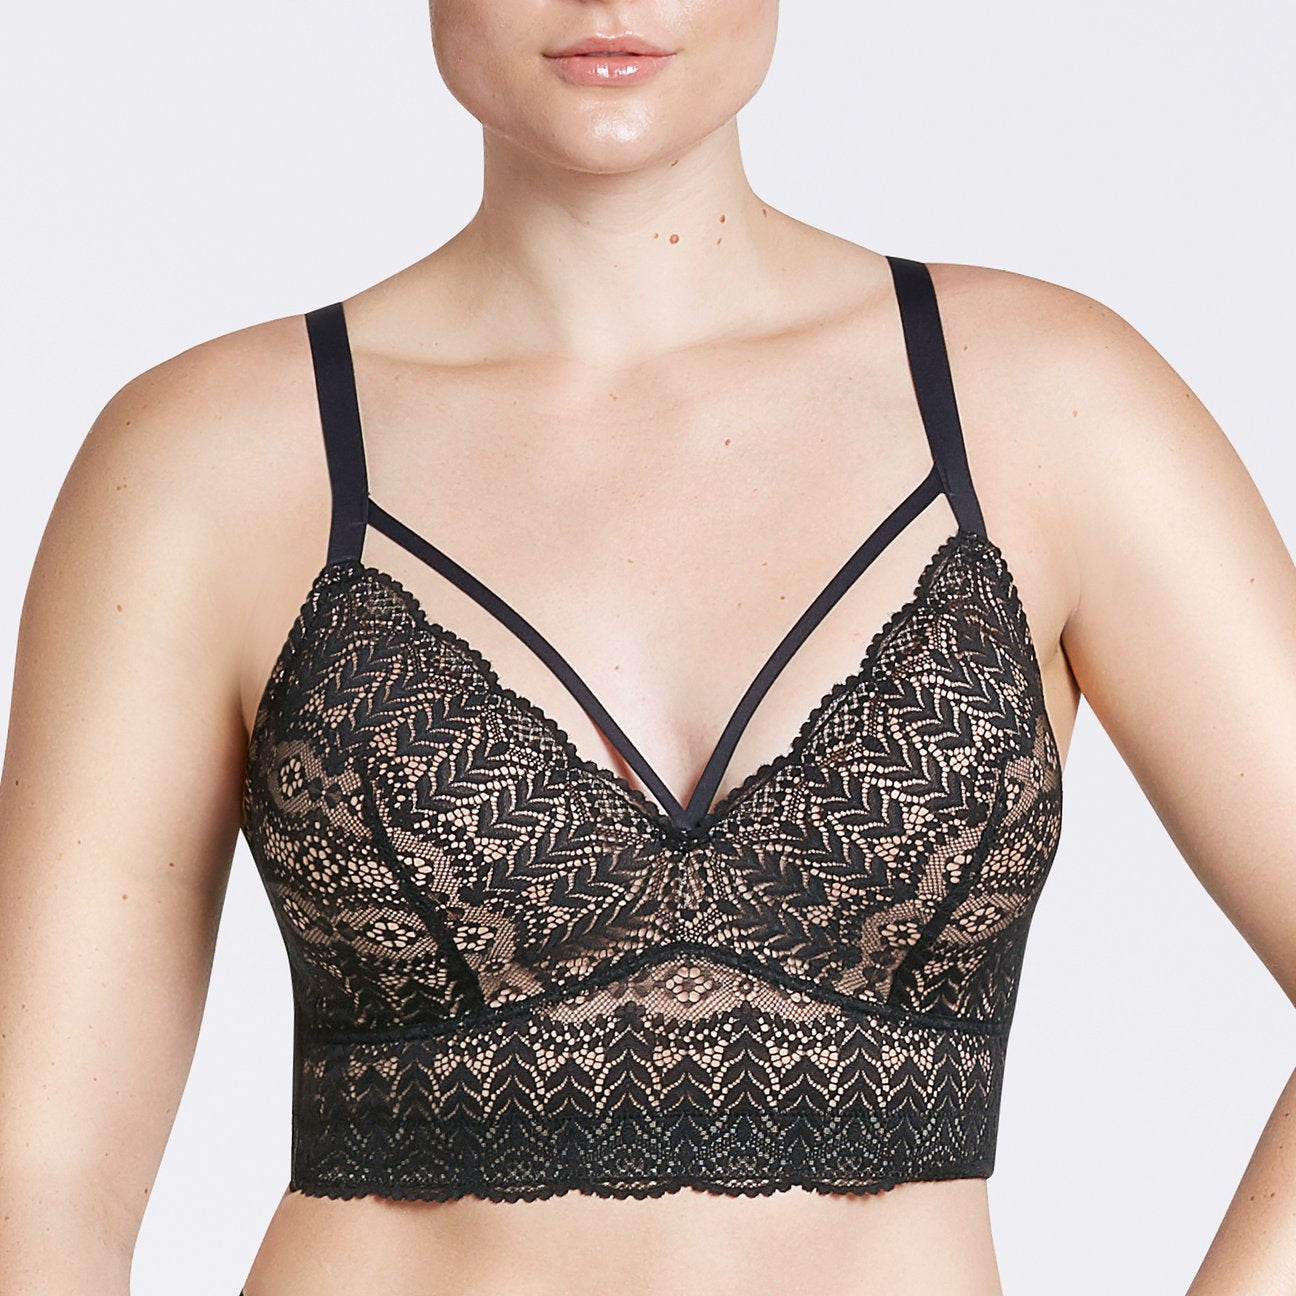 Parfait Mia Lace Wire-Free Padded Lace Brallette P5951 - Black